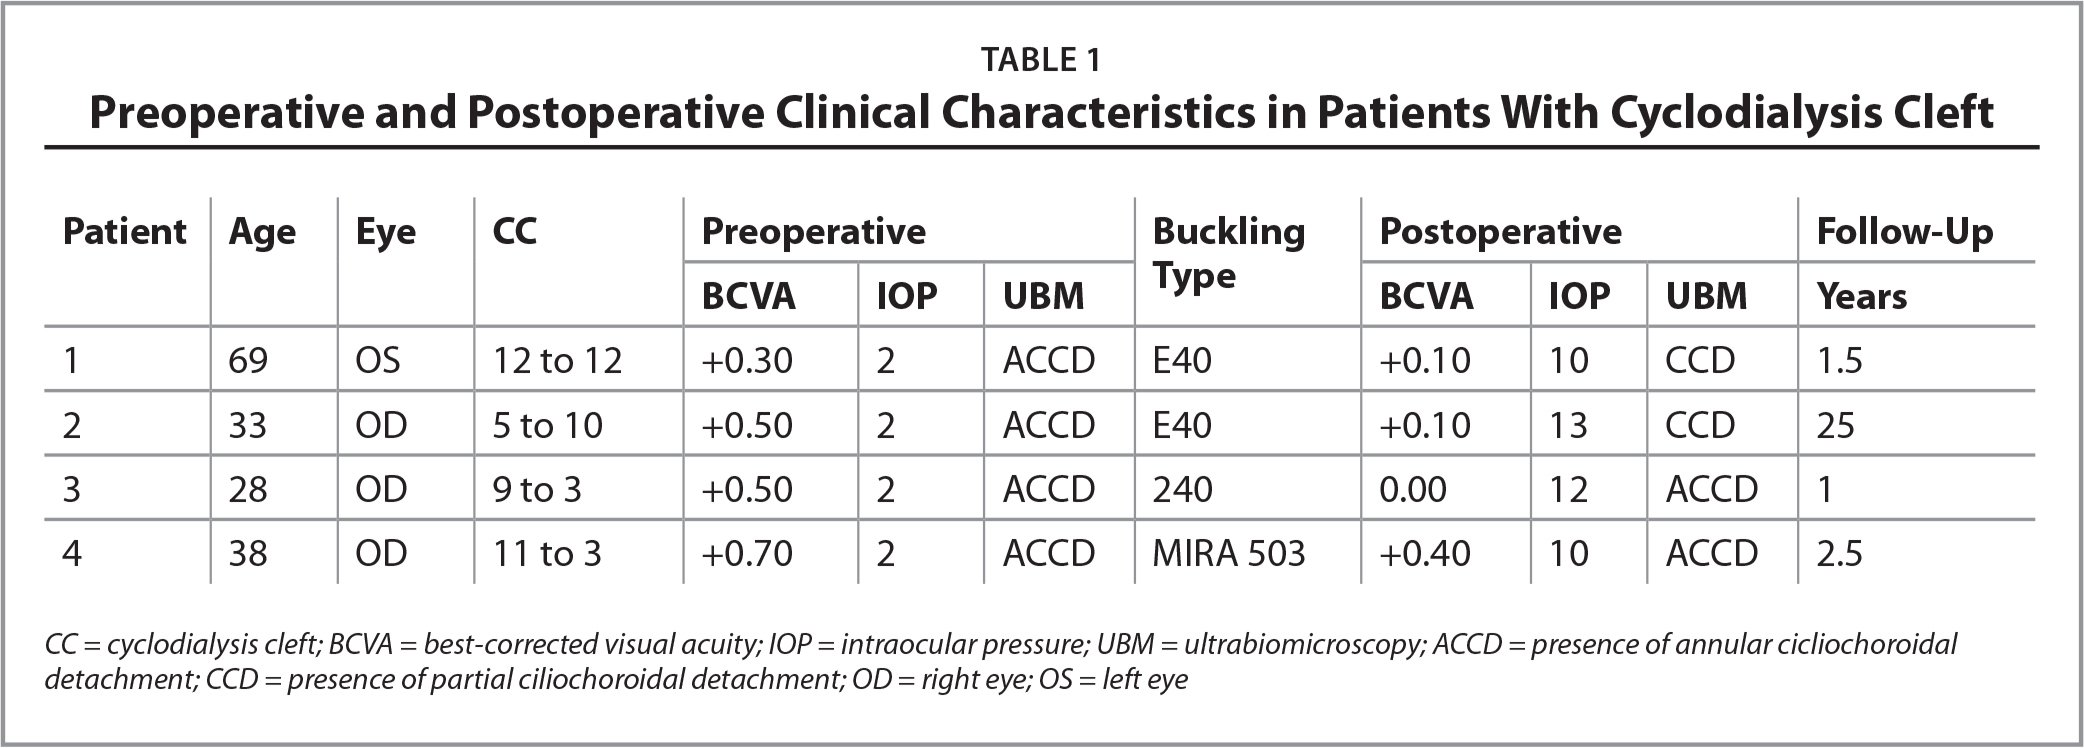 Preoperative and Postoperative Clinical Characteristics in Patients With Cyclodialysis Cleft